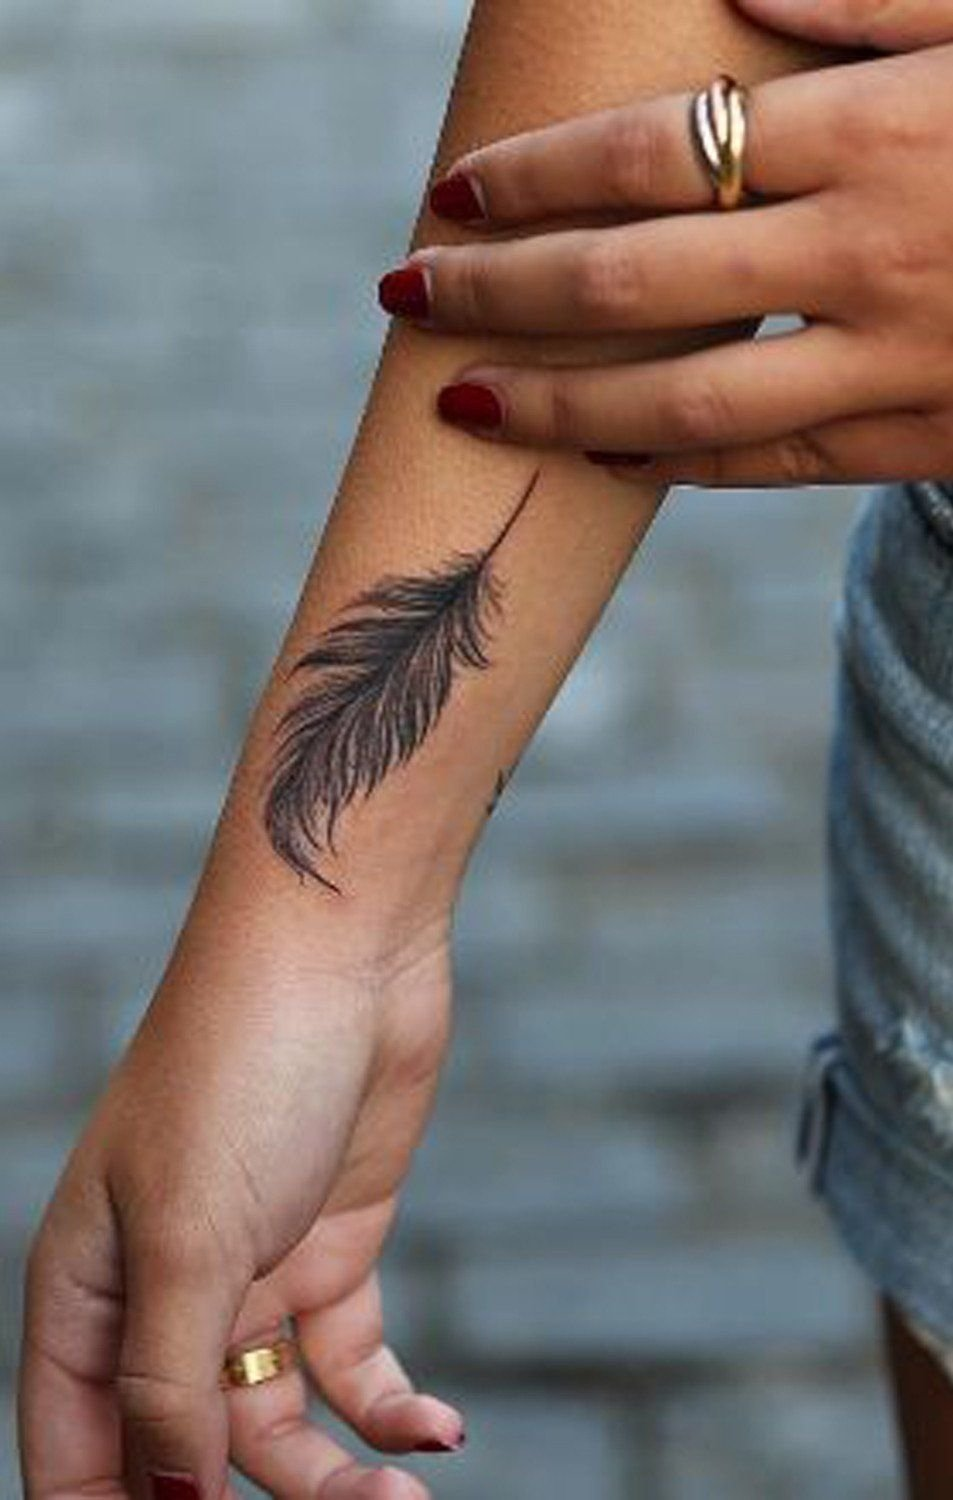 10 Fashionable Tattoo Placement Ideas For Women 20 feather tattoo ideas for women feather tattoos tatting and 2020